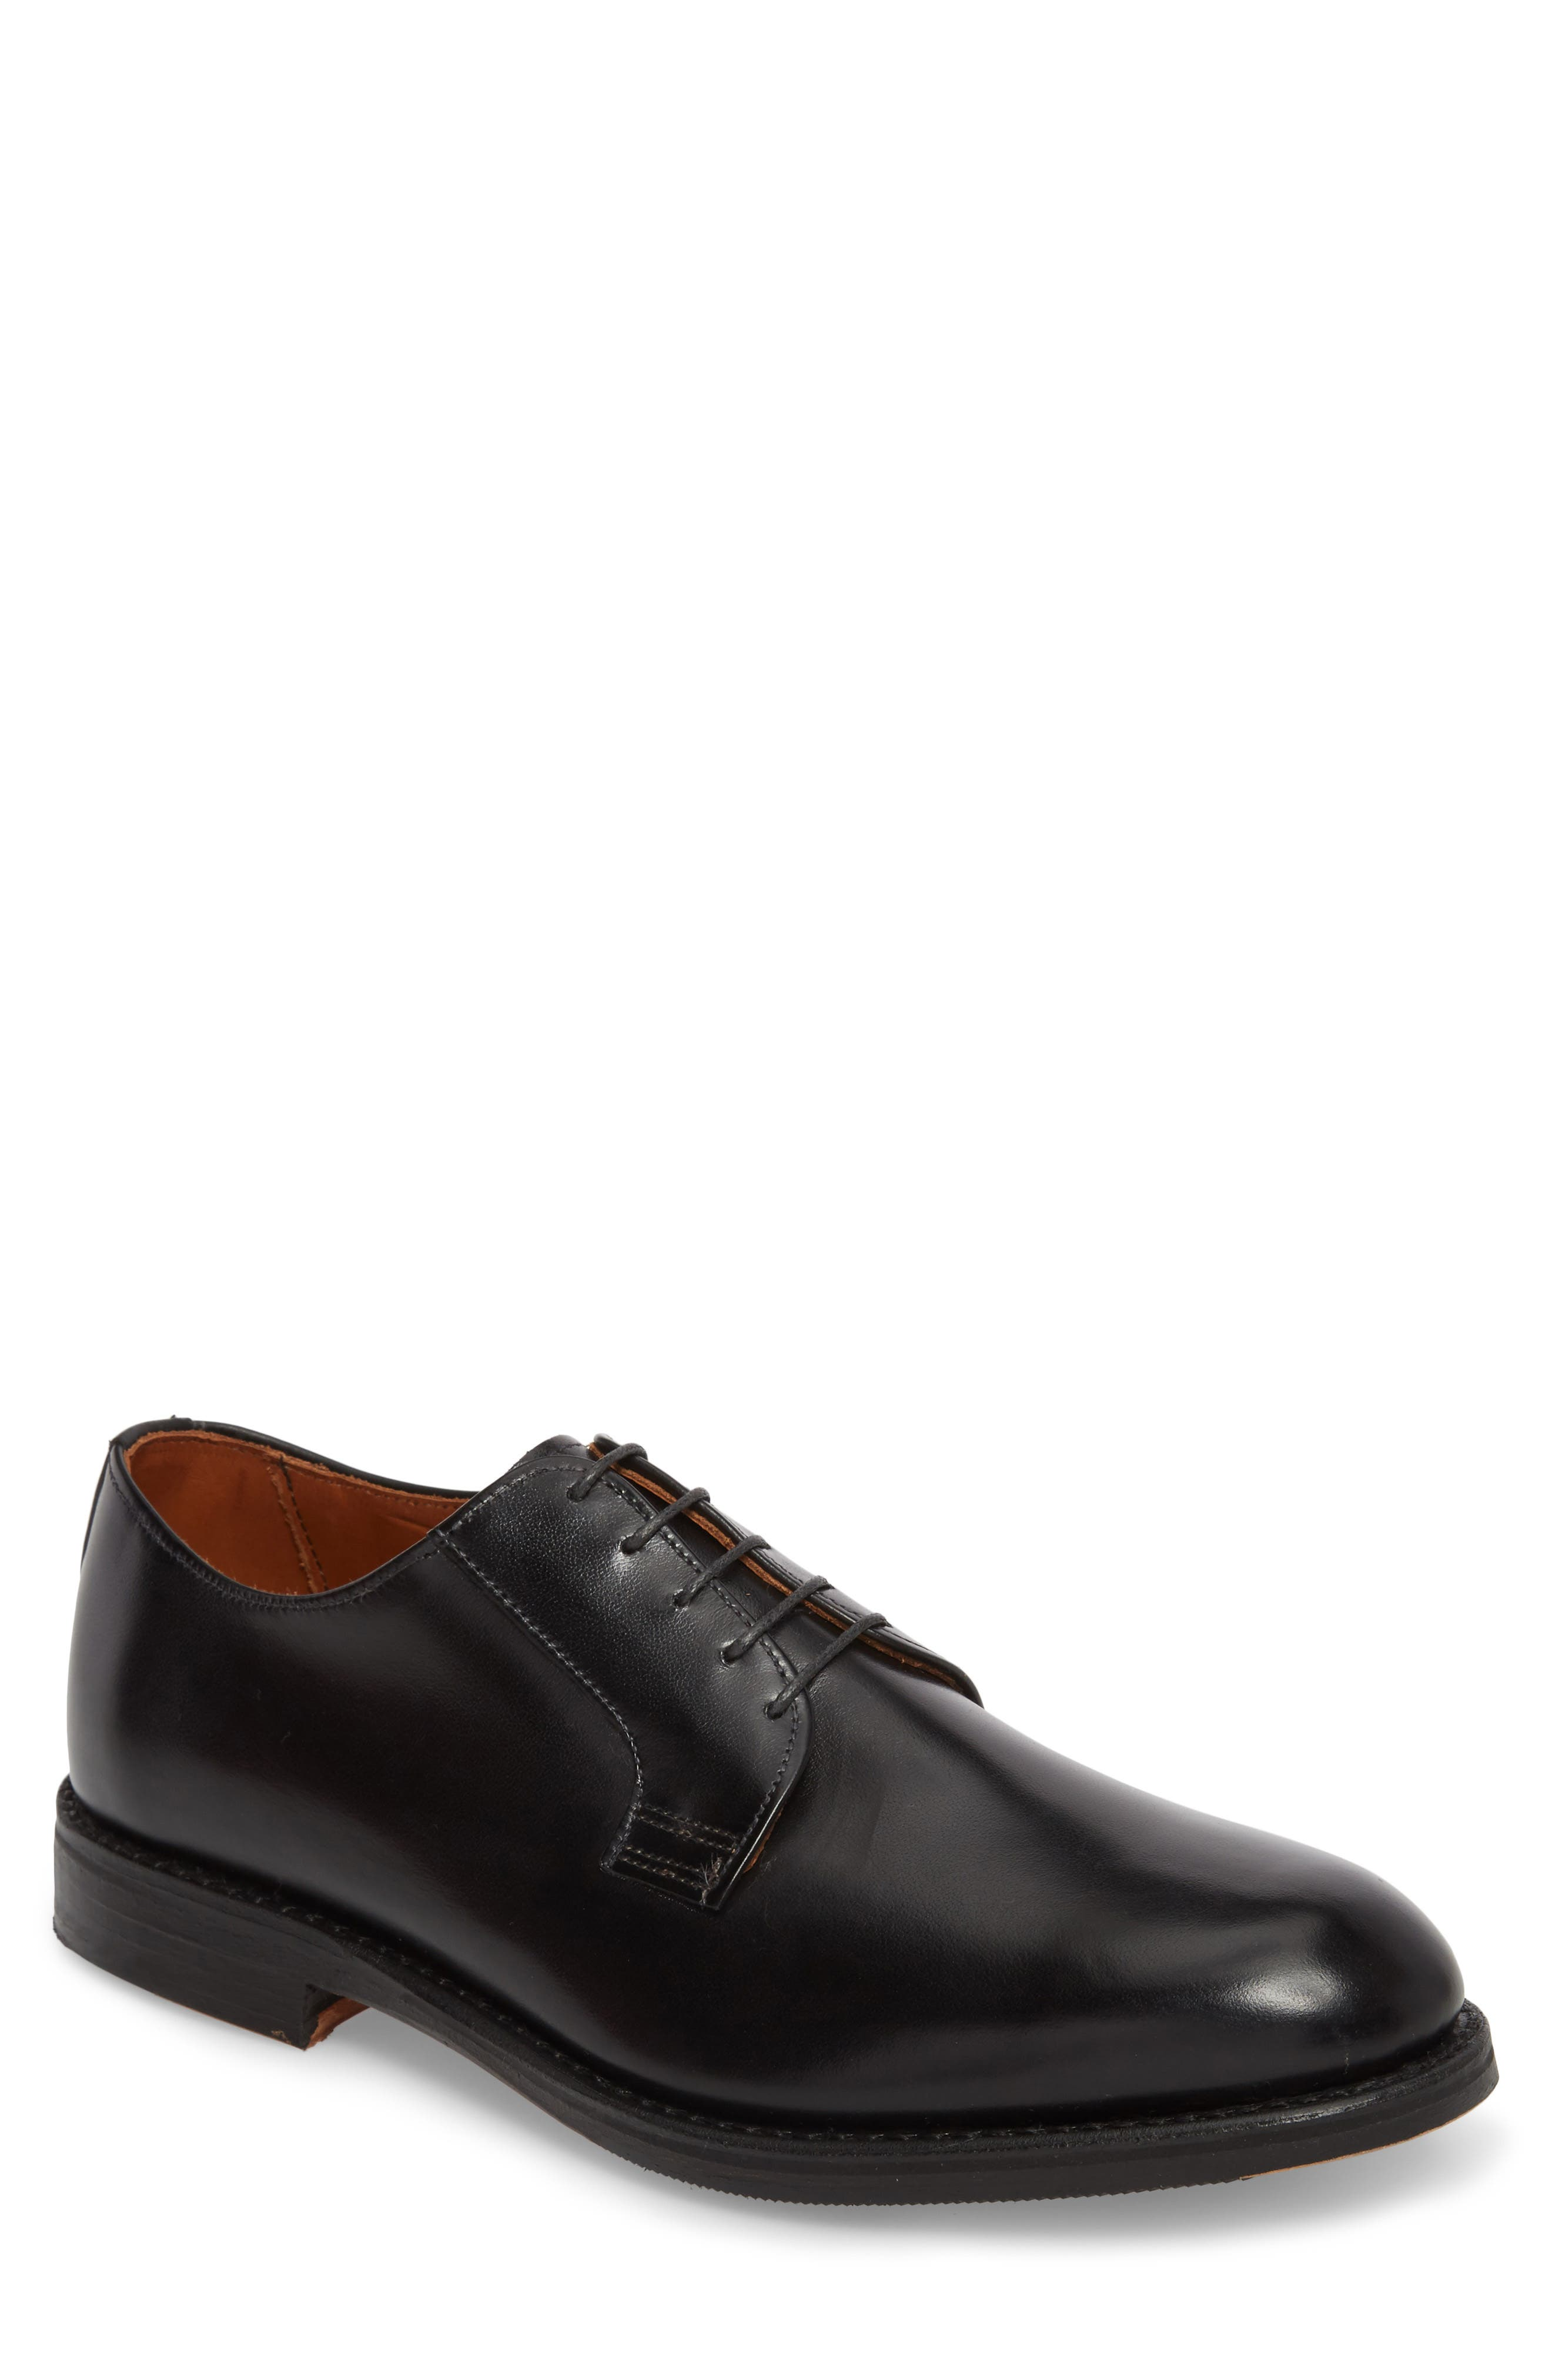 Whitney Plain Toe Derby,                             Main thumbnail 1, color,                             BLACK LEATHER